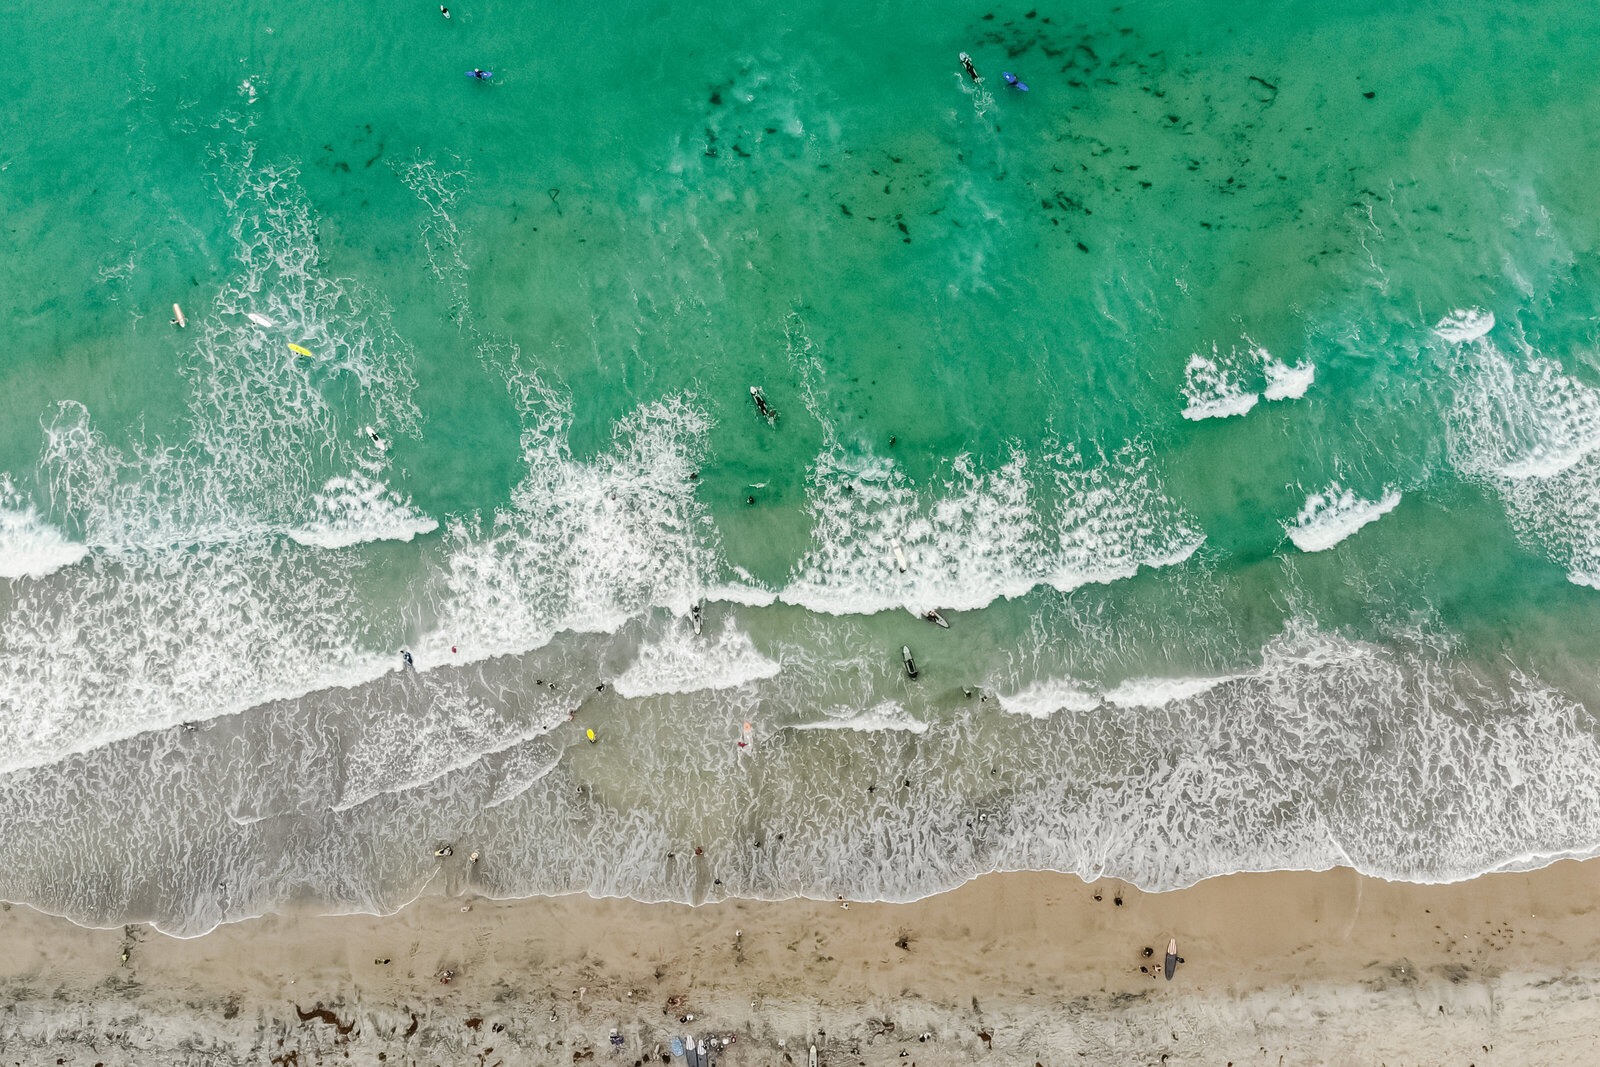 034-KBP-Aerial-Beach-Ocean-Waves